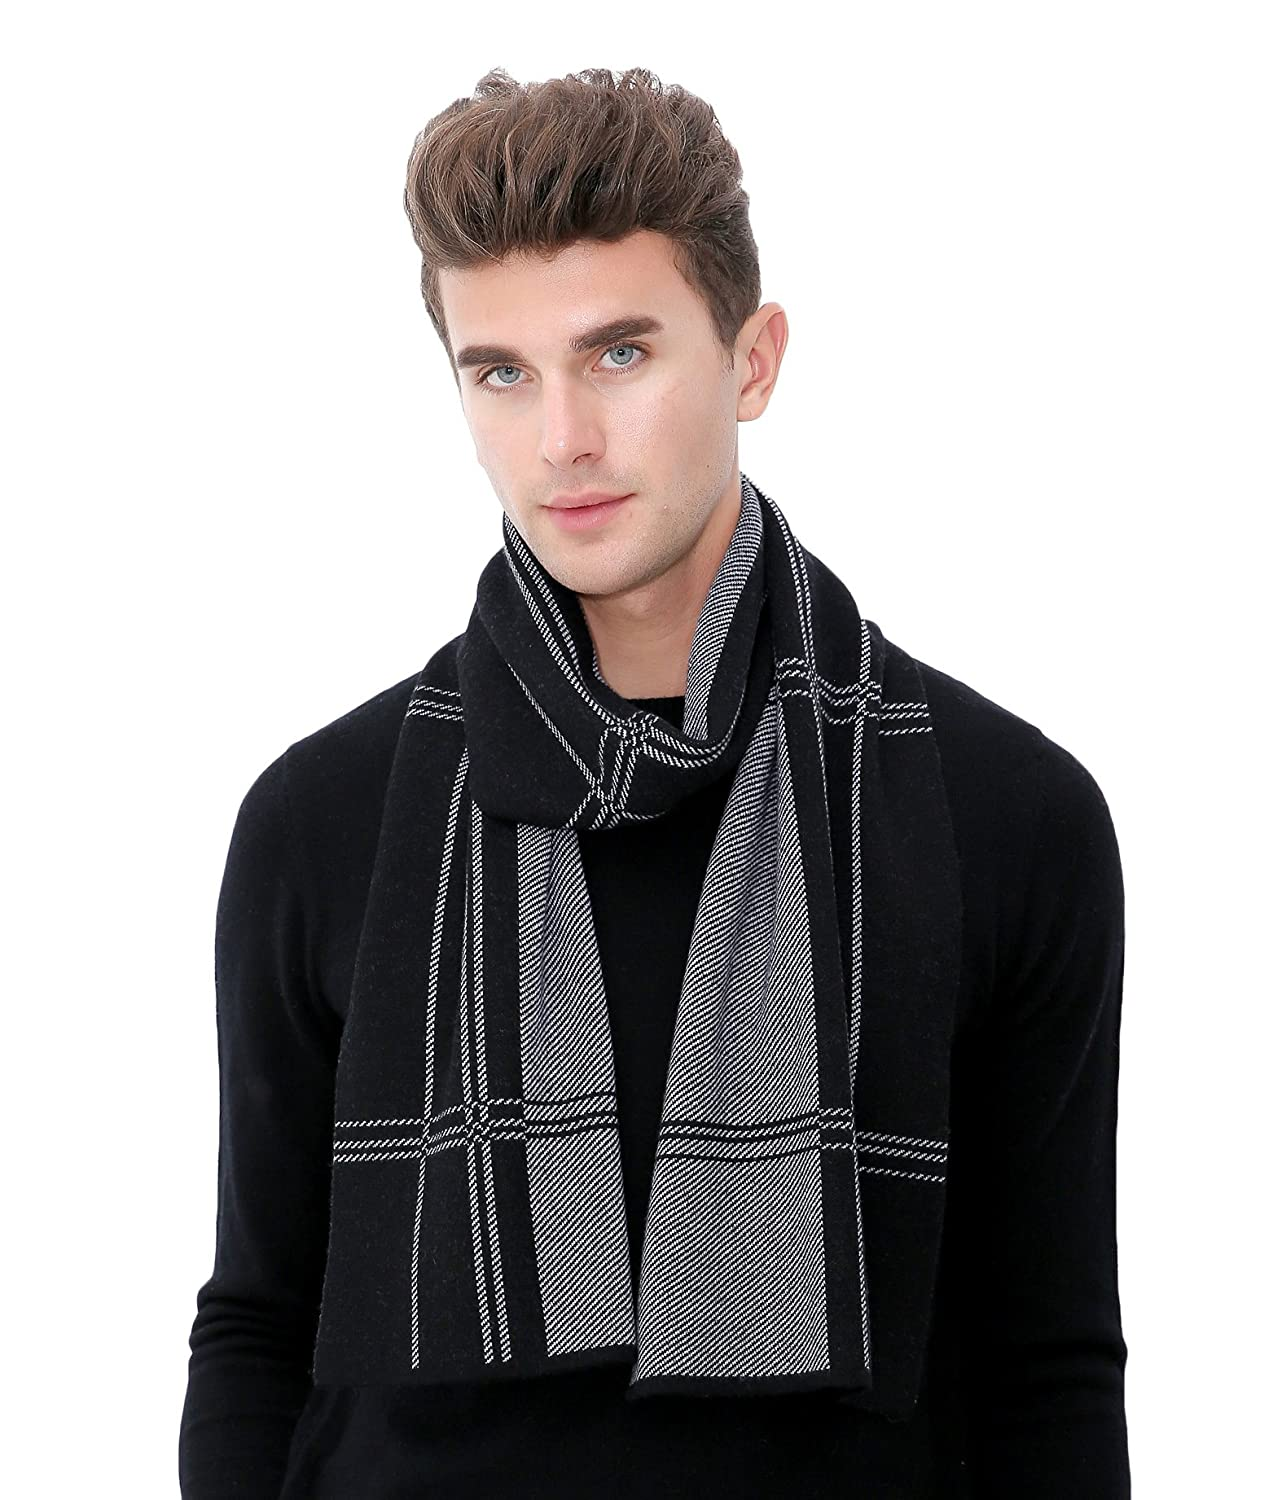 RIONA Men's Australian Merino Wool Plaid Knitted Scarf - Soft Warm Gentleman Neckwear with Gift Box RIW9136Black